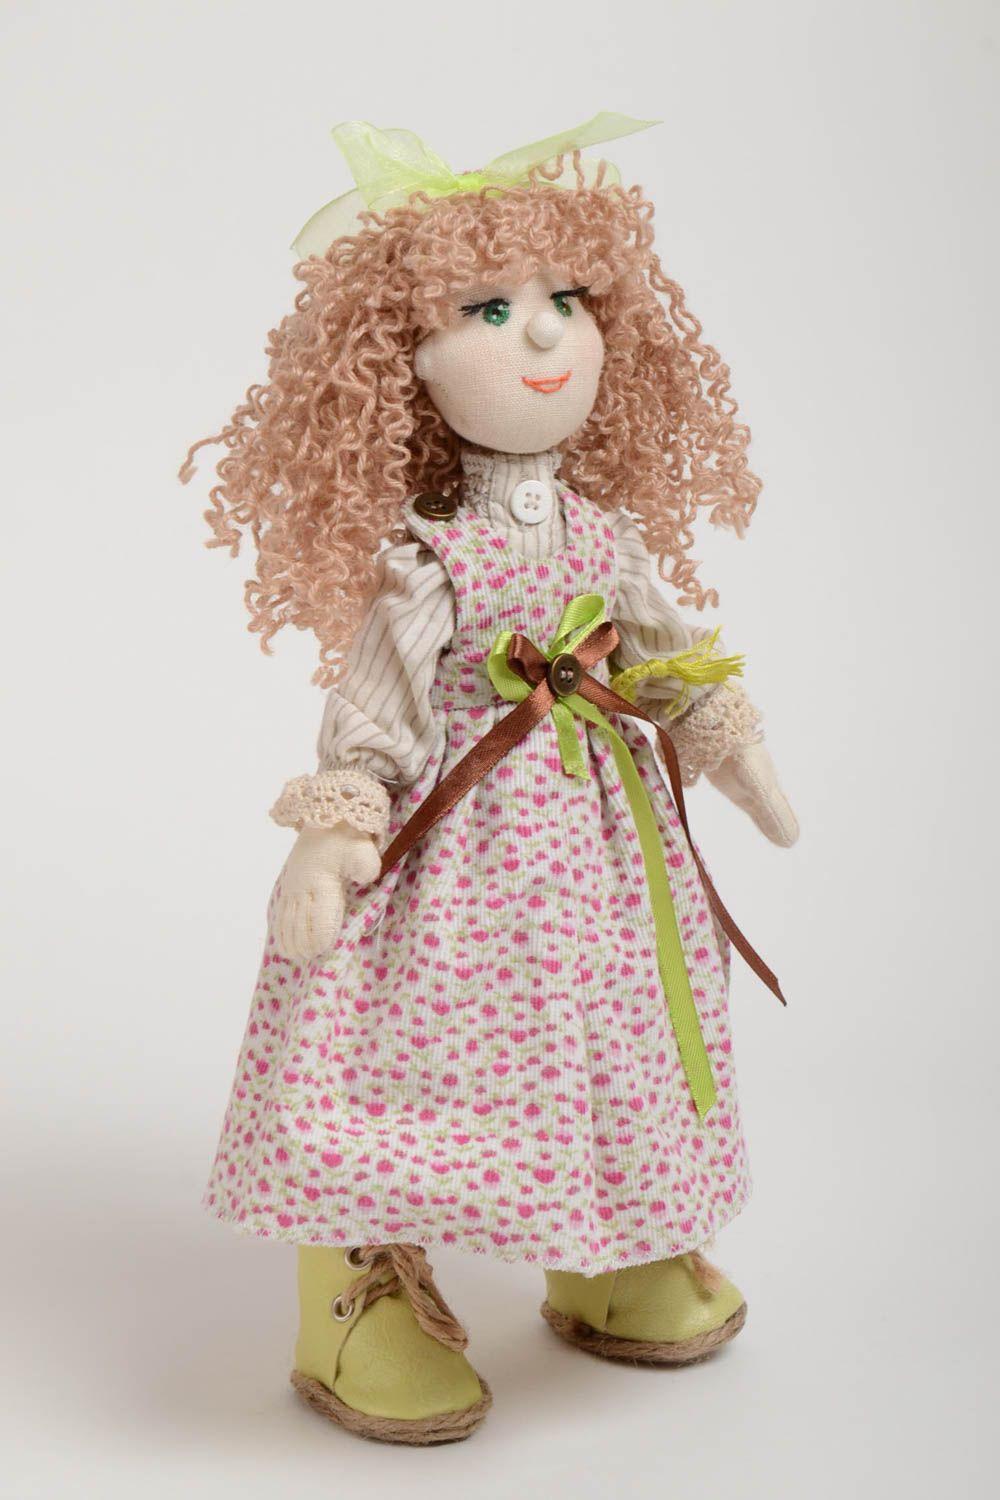 Designer fabric doll made of natural materials with movable limbs home decor photo 2